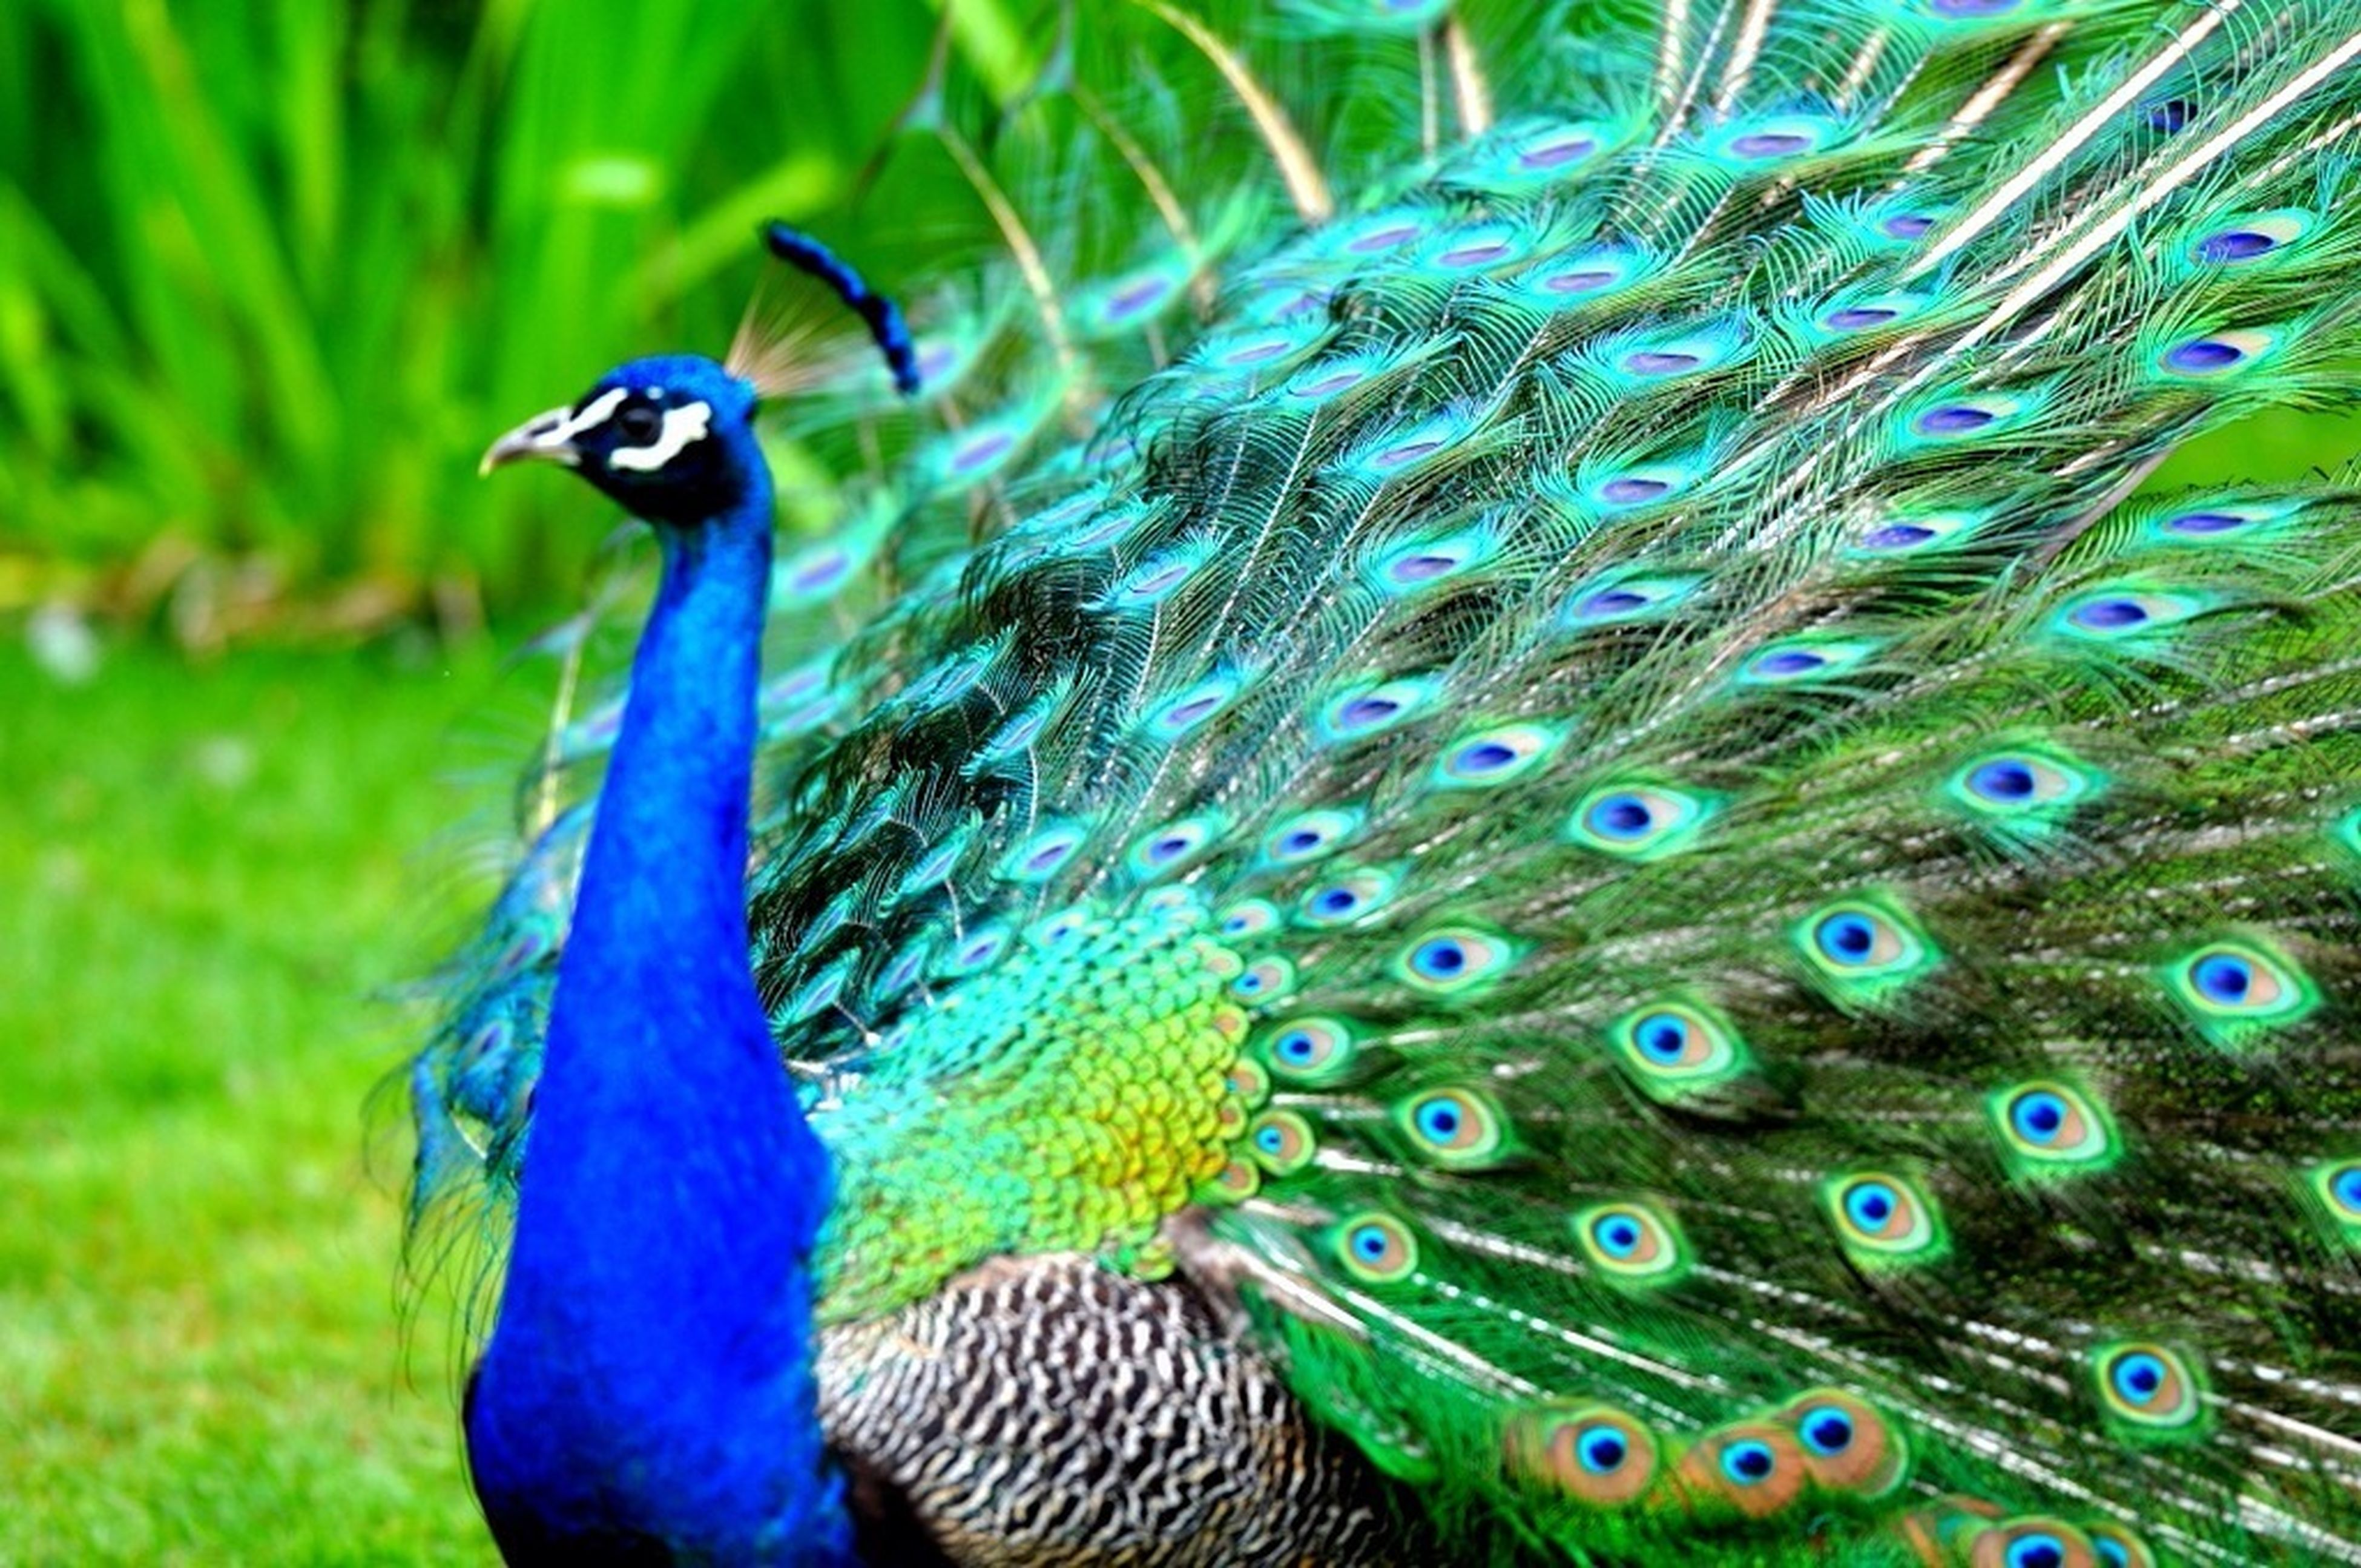 peacock, animal themes, animals in the wild, bird, wildlife, one animal, feather, blue, beauty in nature, male animal, peacock feather, close-up, natural pattern, nature, multi colored, focus on foreground, animal head, outdoors, day, green color